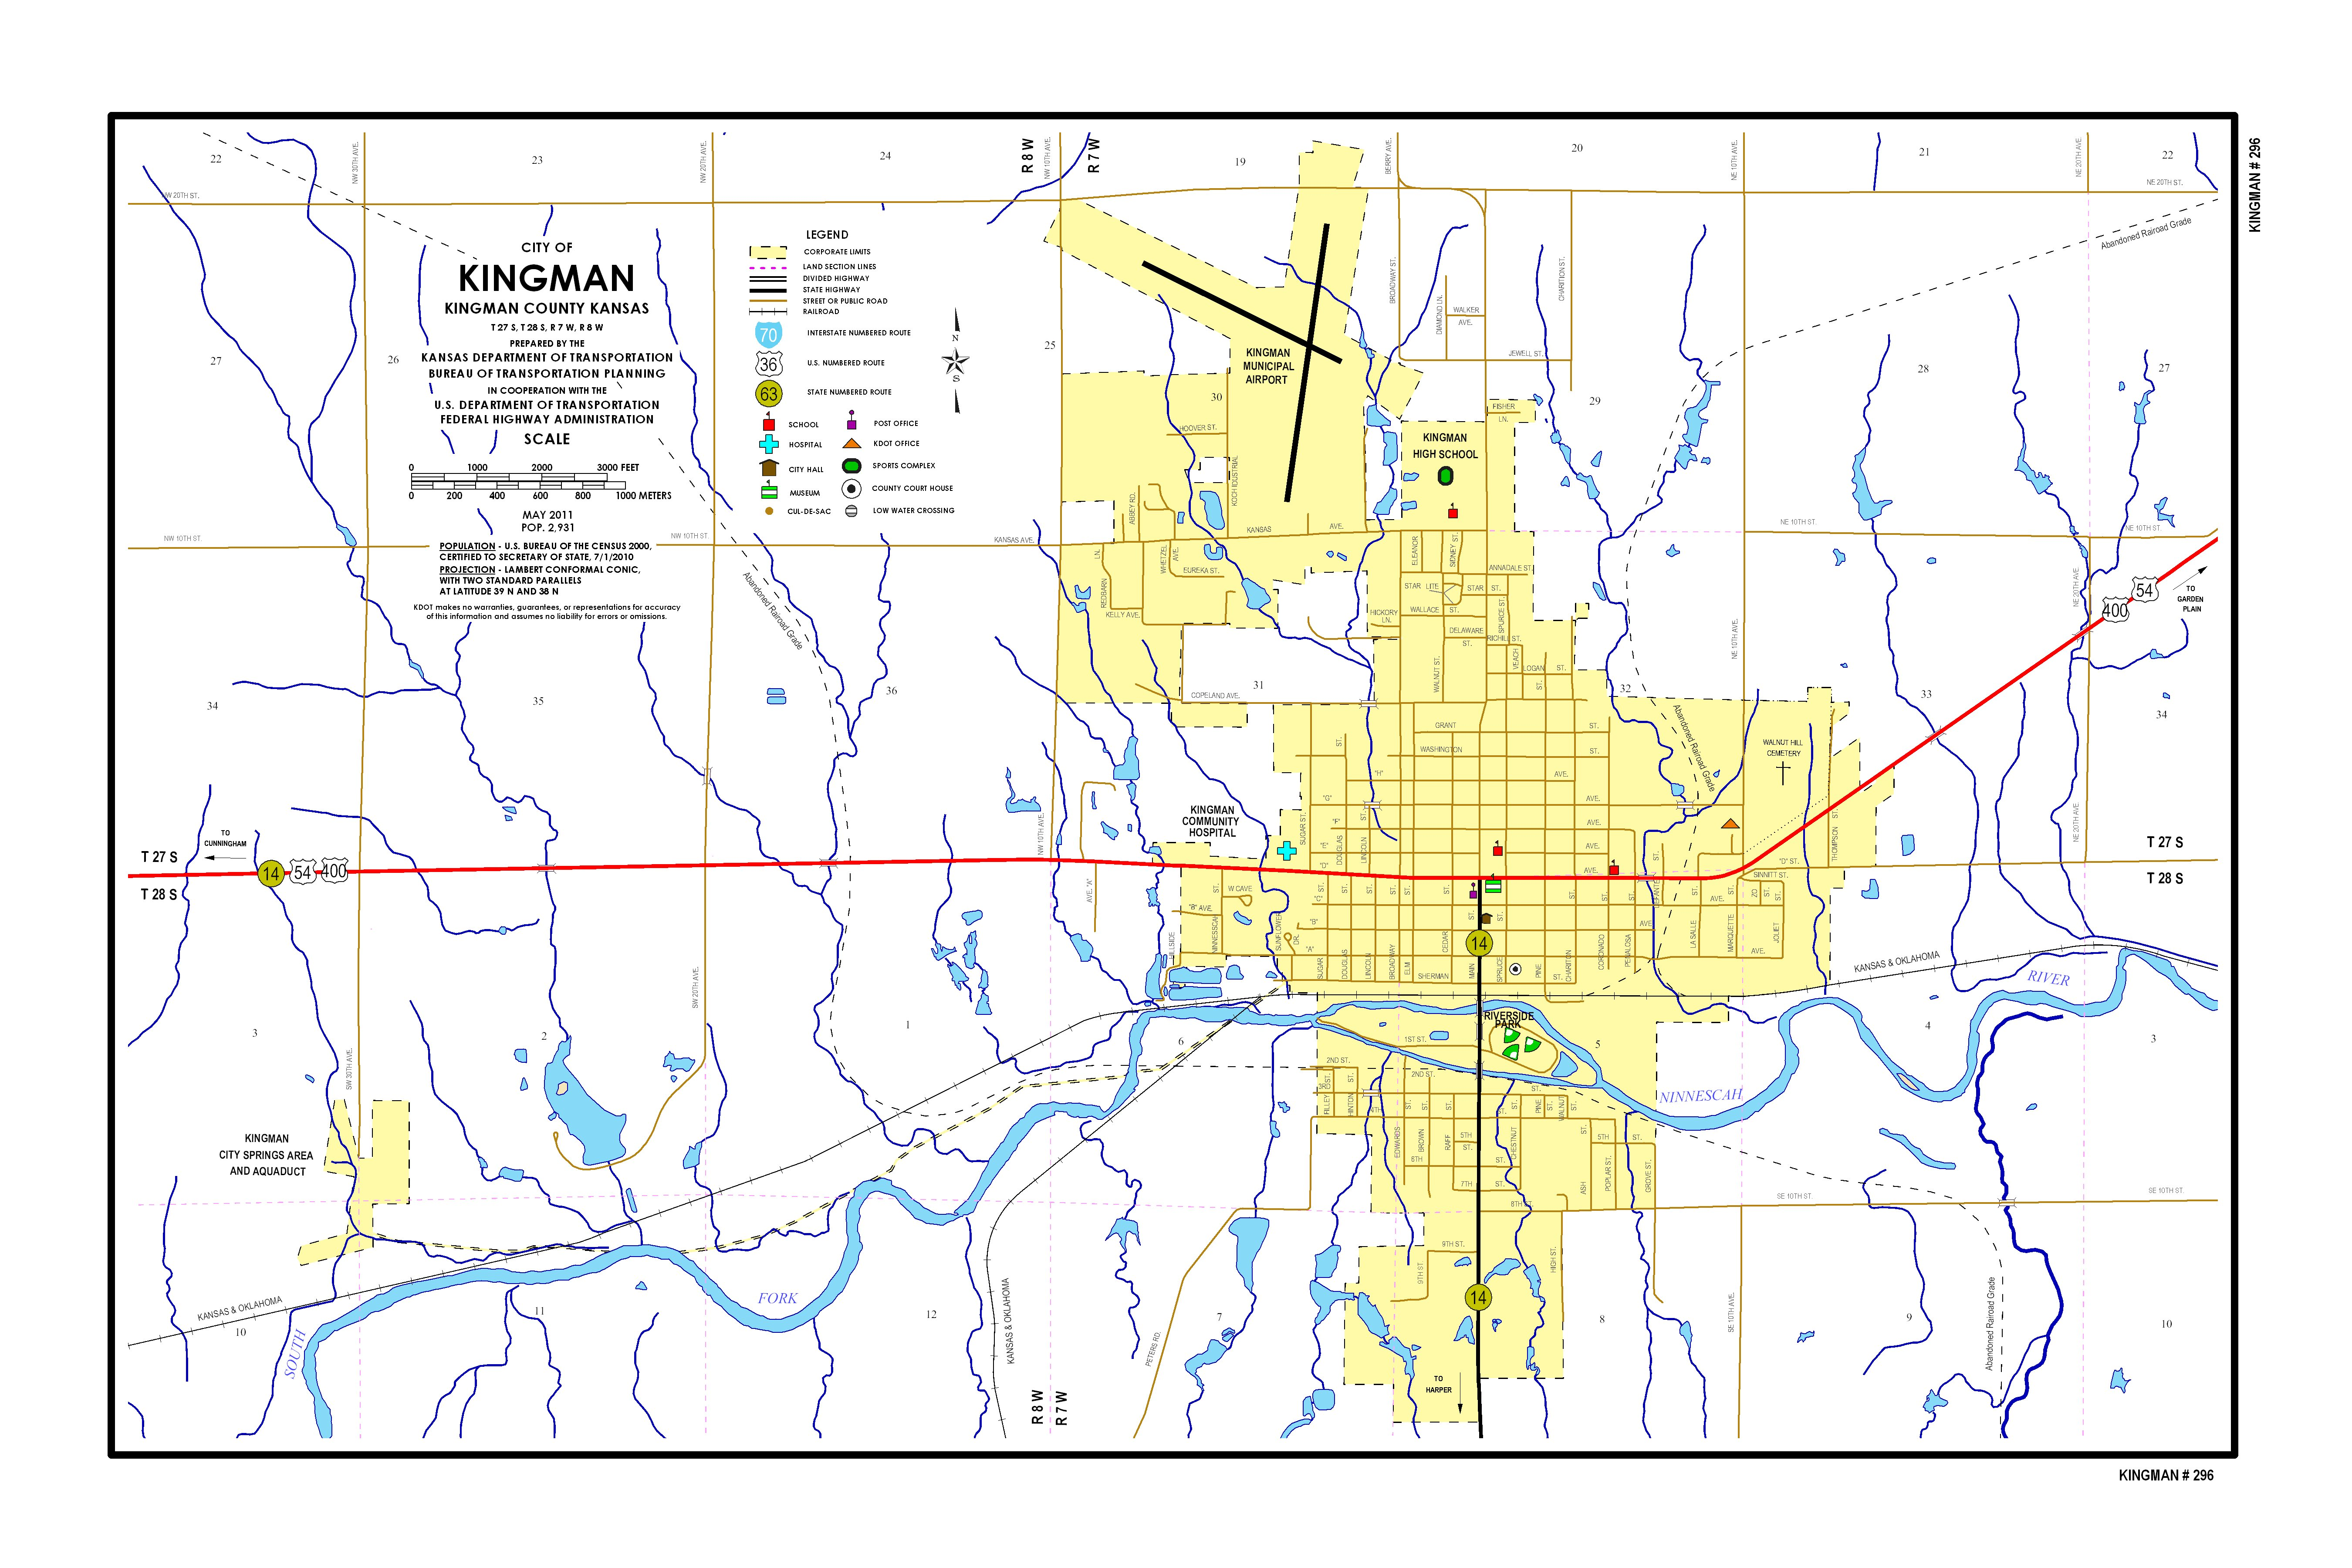 kansas speed limit map Kdot City Maps Sorted By City Name kansas speed limit map